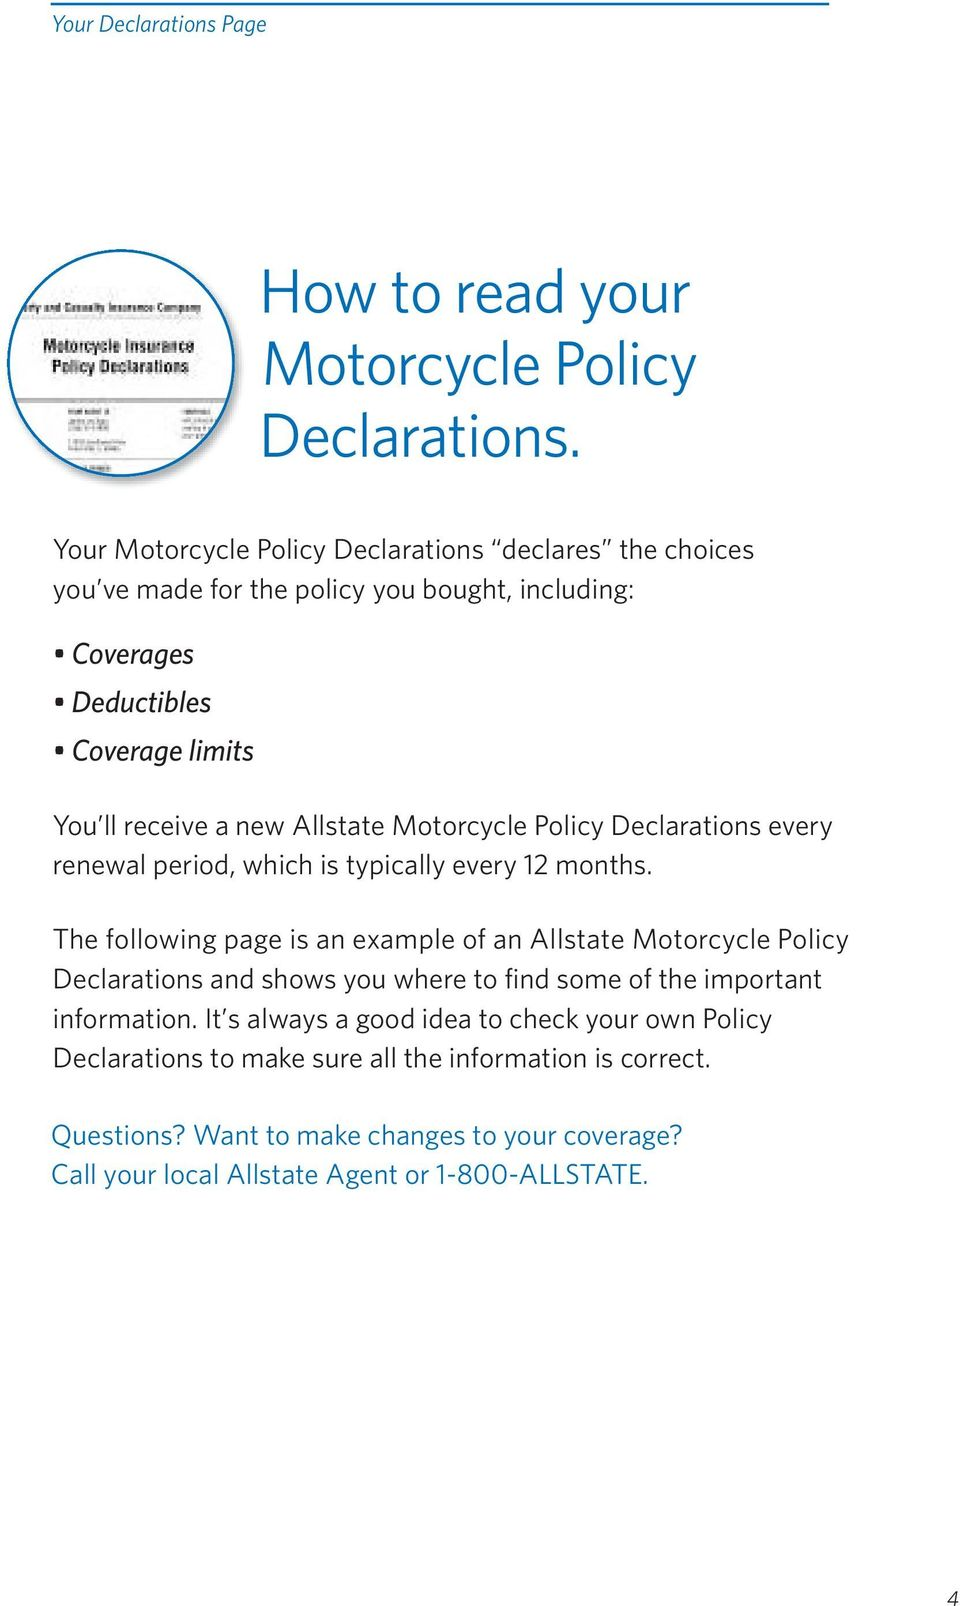 Allstate Motorcycle Policy Declarations every renewal period, which is typically every 12 months.